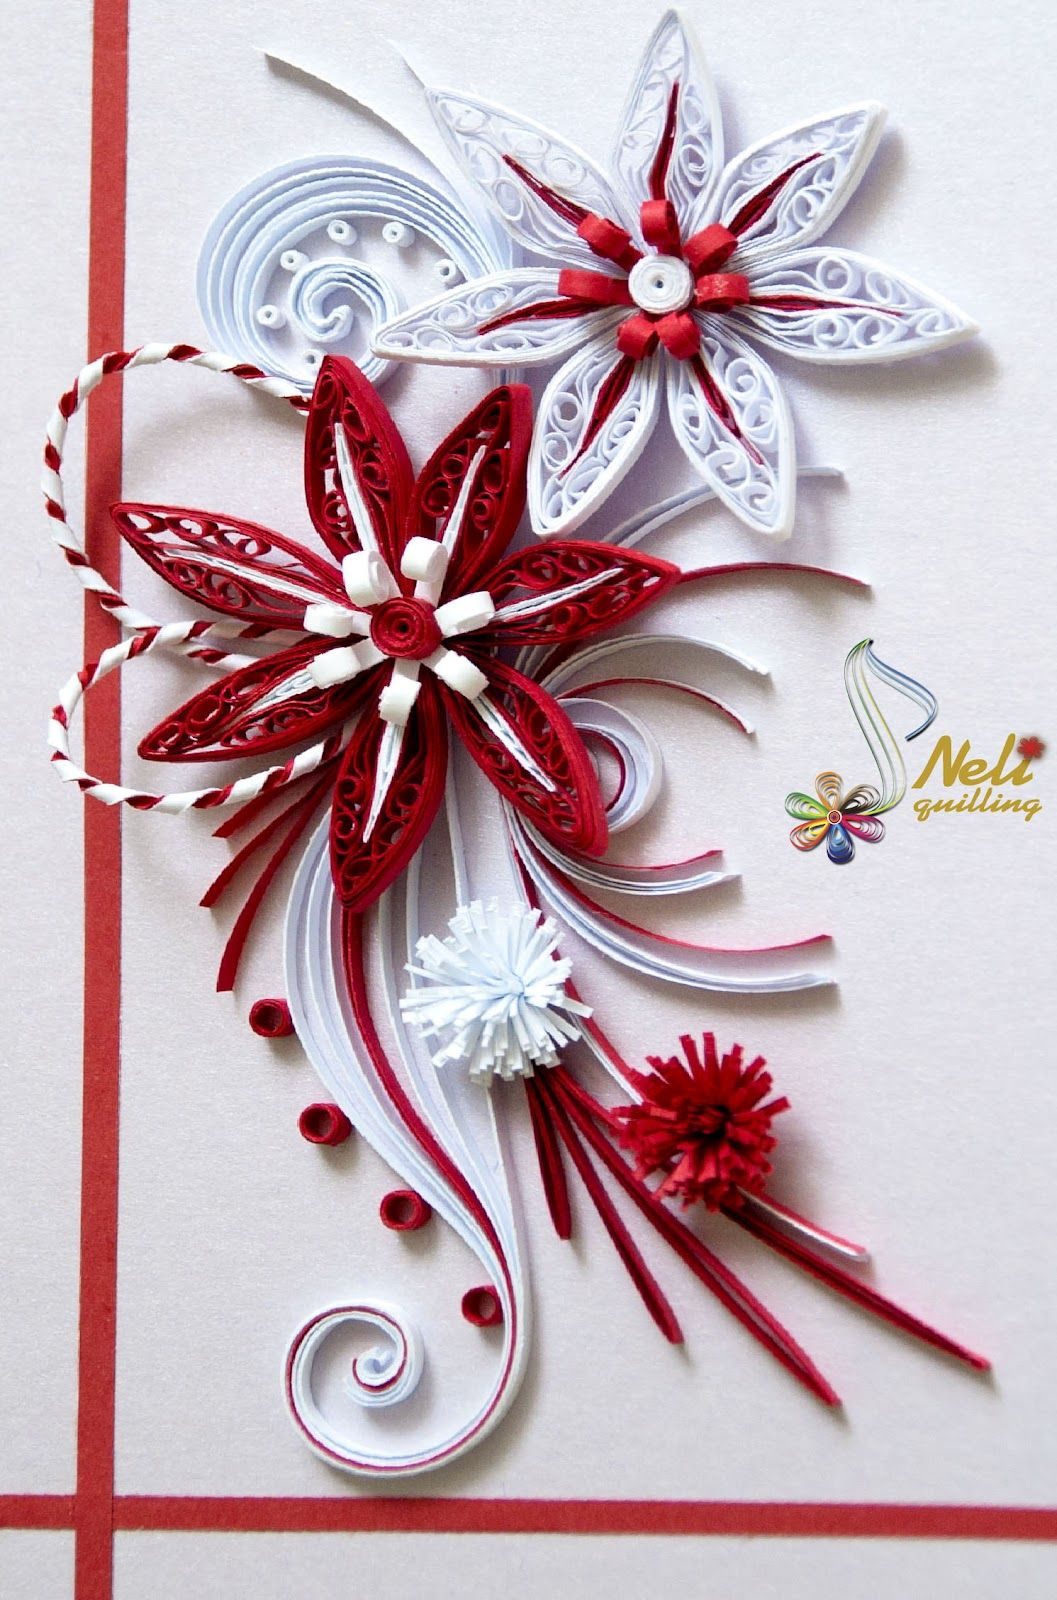 Neli quilling cards baba marta 105 145 quilled cards neli quilling cards baba marta 105 145 m4hsunfo